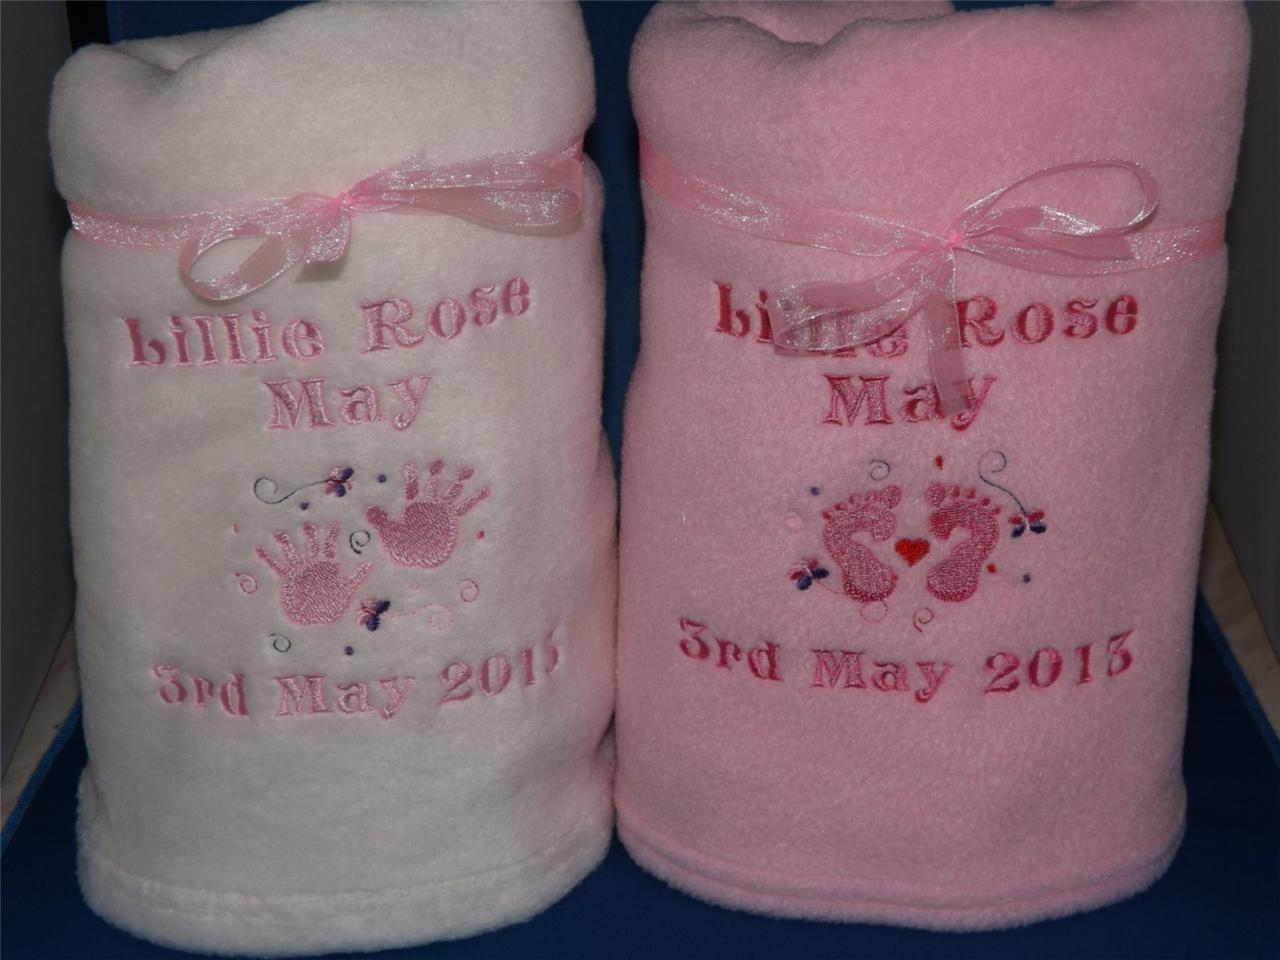 PERSONALISED-BABY-BLANKET-HANDPRINTS-FOOTPRINTS-GIFT-HIGH-QUALITY-FAST-DELIVERY